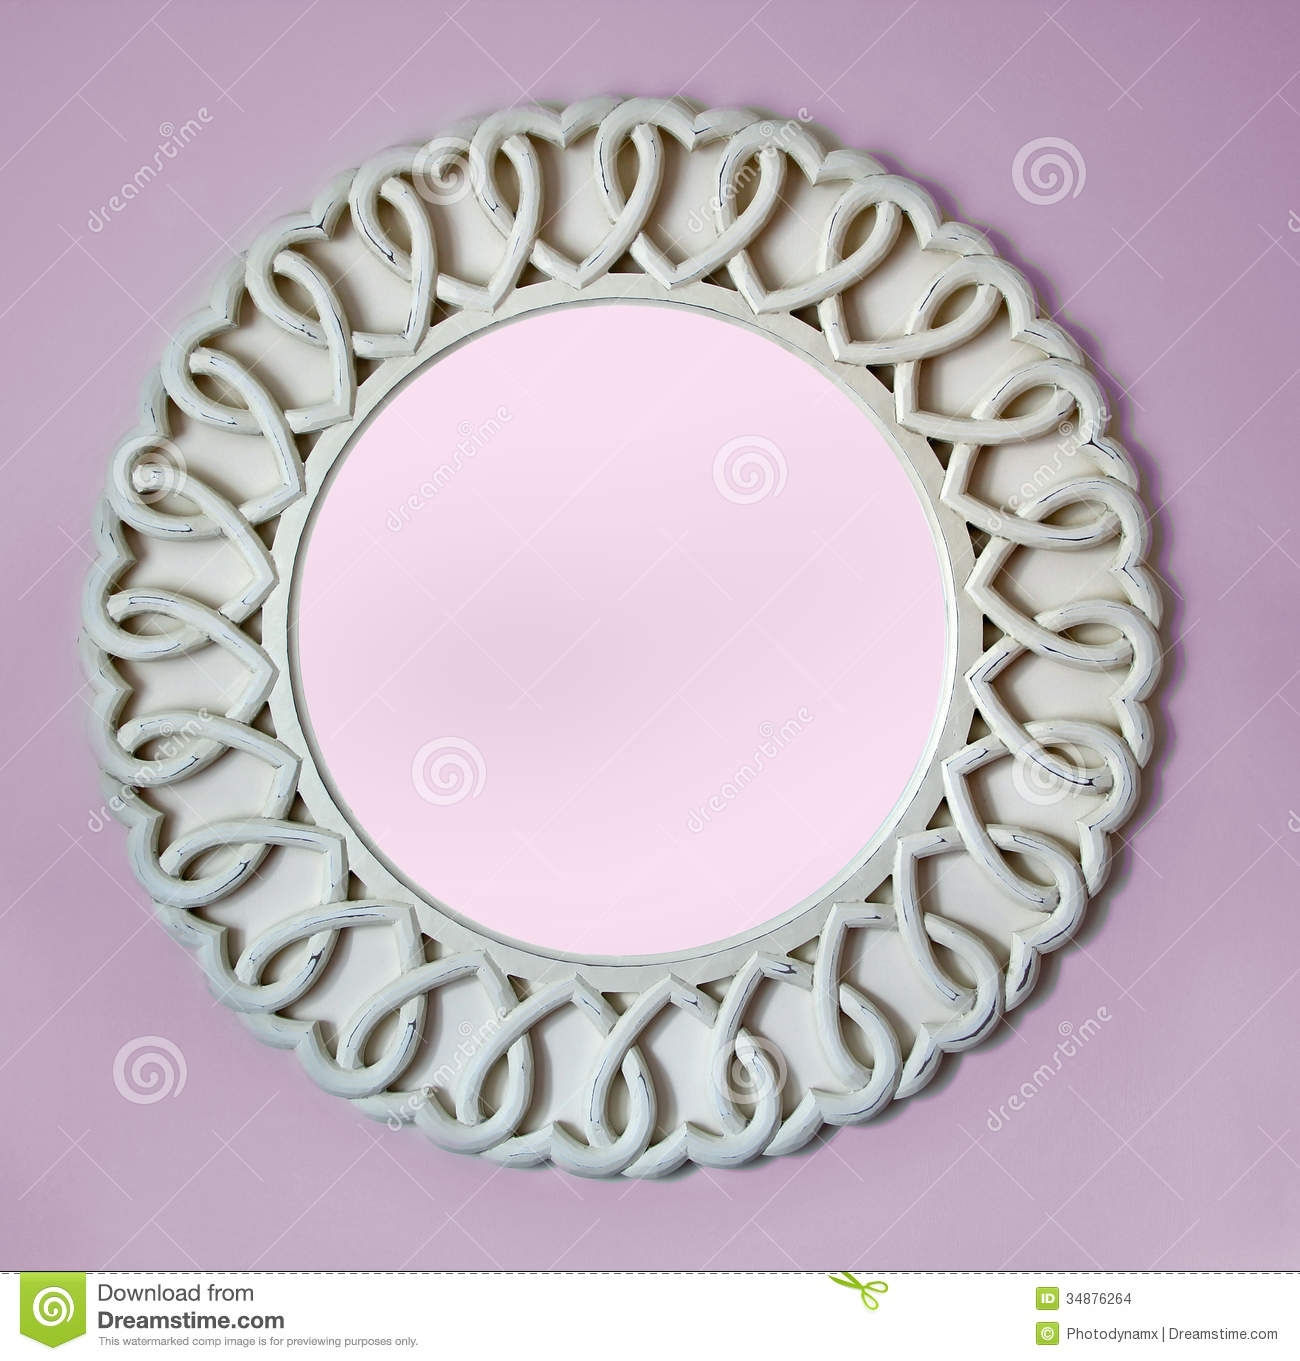 Featured Image of Shabby Chic Round Mirror